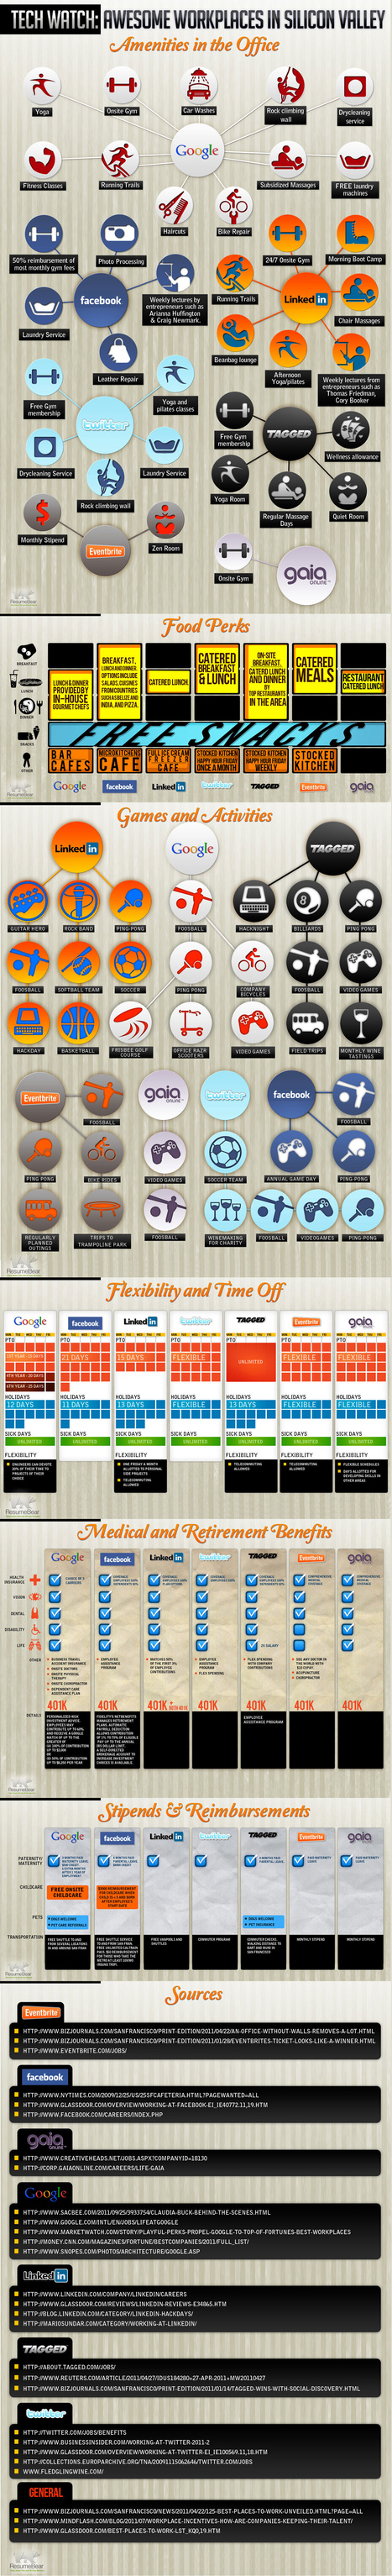 Remembering Our First Infographic | INFOGRAPHICS | Scoop.it